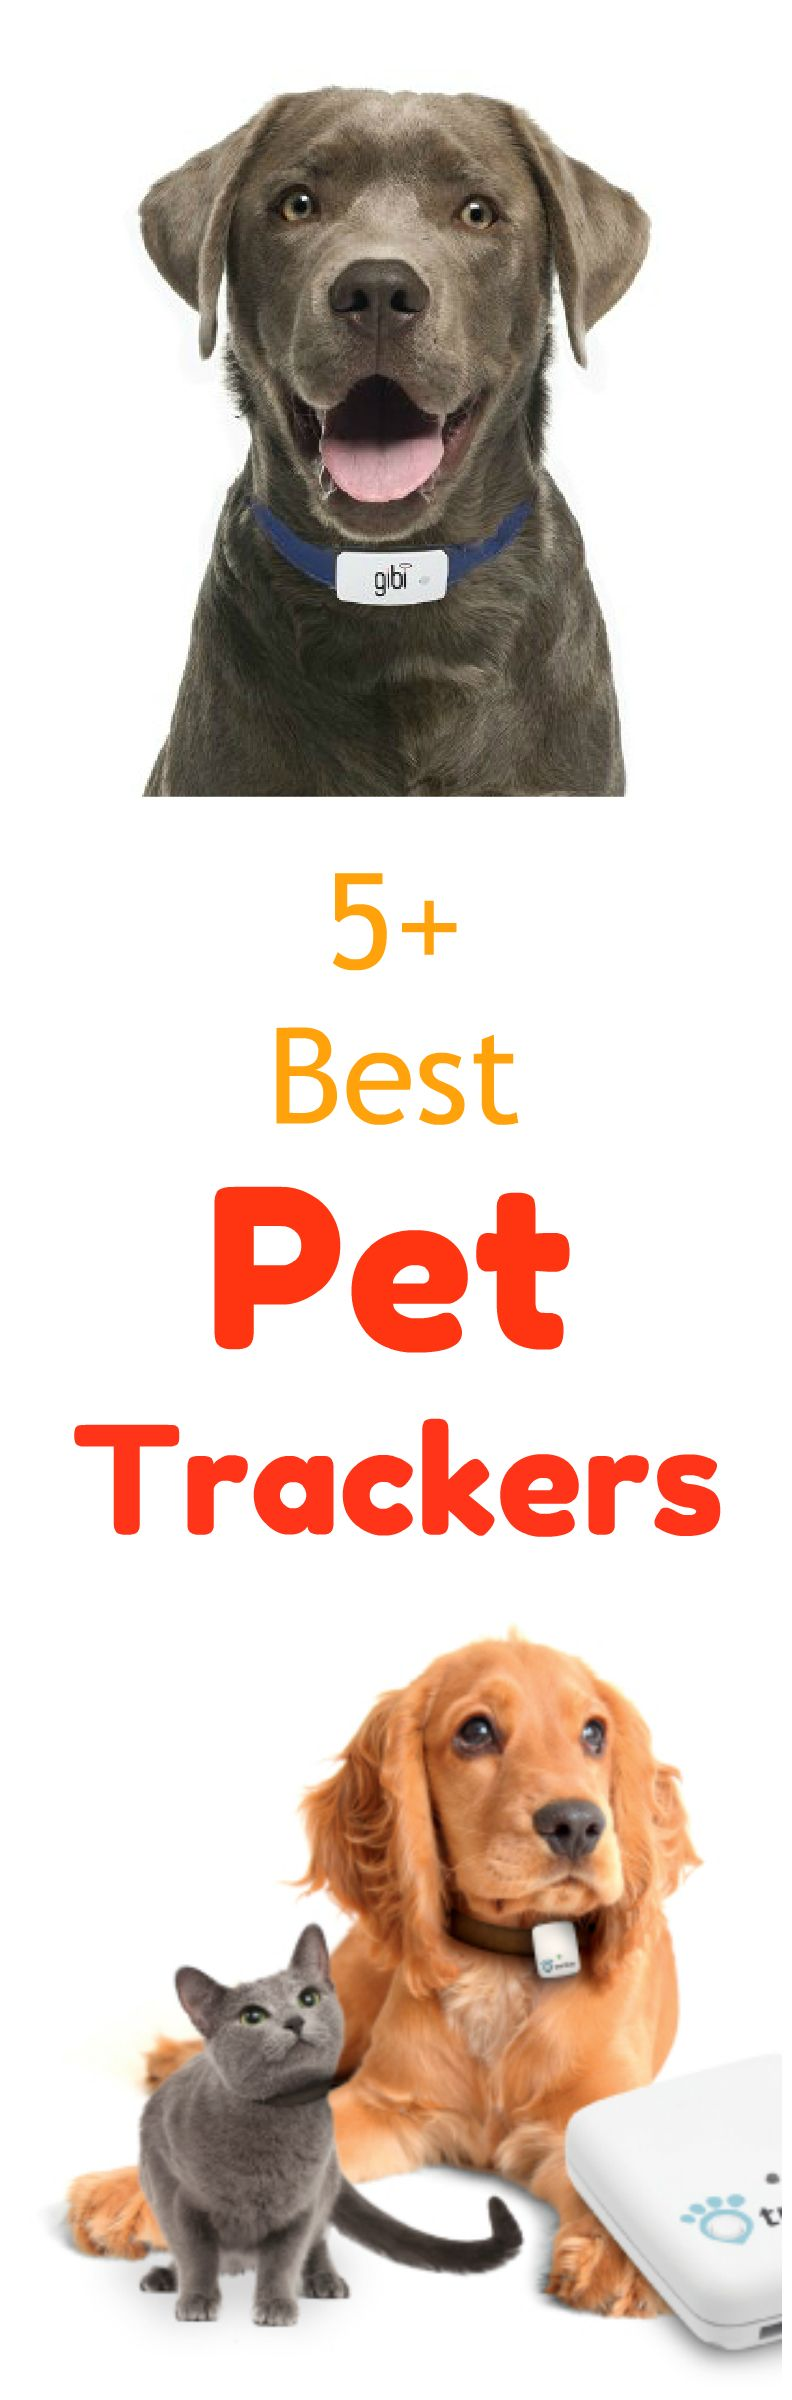 5+ Best Pet Tracking Systems - Reviews and Recommendations Posted April 1st, 2016 by Lady Bee. There are powerful systems that come with a hefty price tag, but there are also less expensive trackers on the market too that work pretty well; it all depends on your needs.